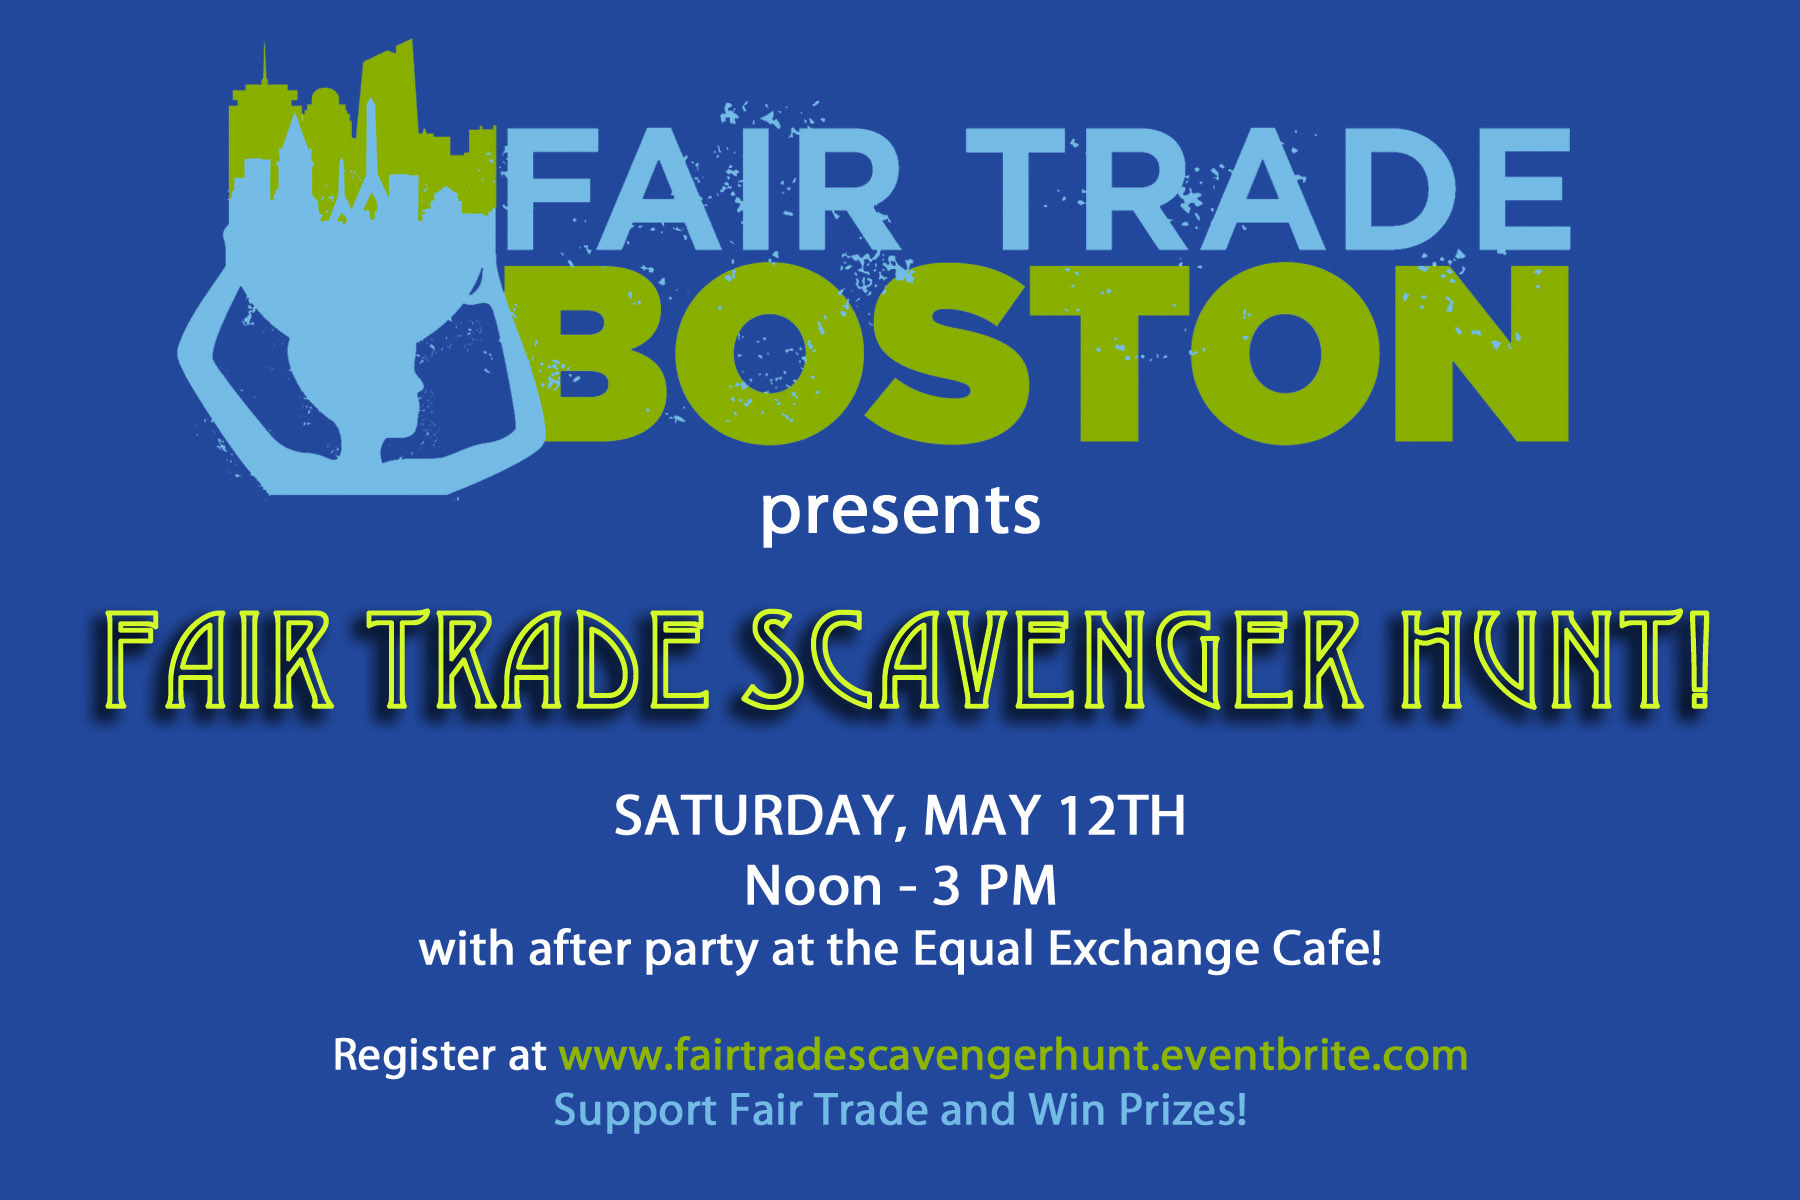 Fair Trade Scavenger Hunt